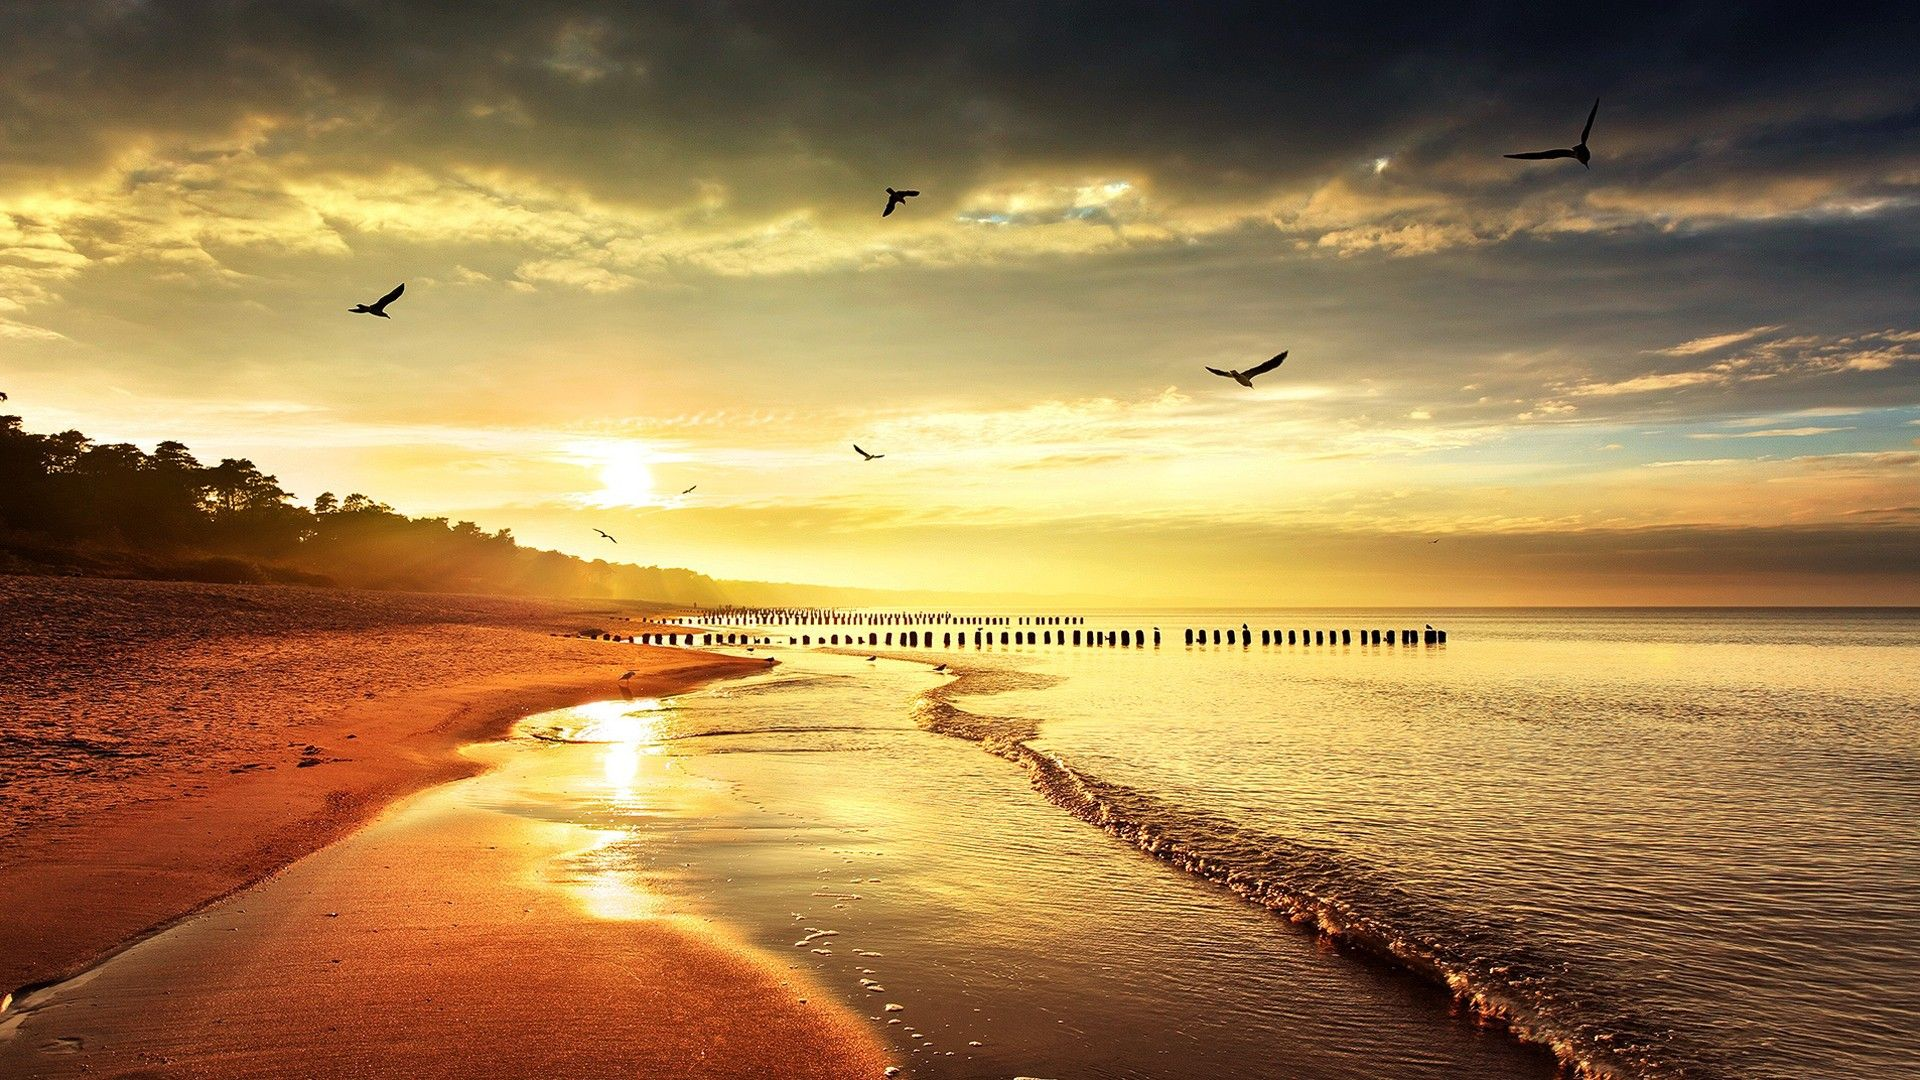 beach sunset wallpaper 1920a—1080 beach sunset wallpaper 46 wallpapers adorable wallpapers